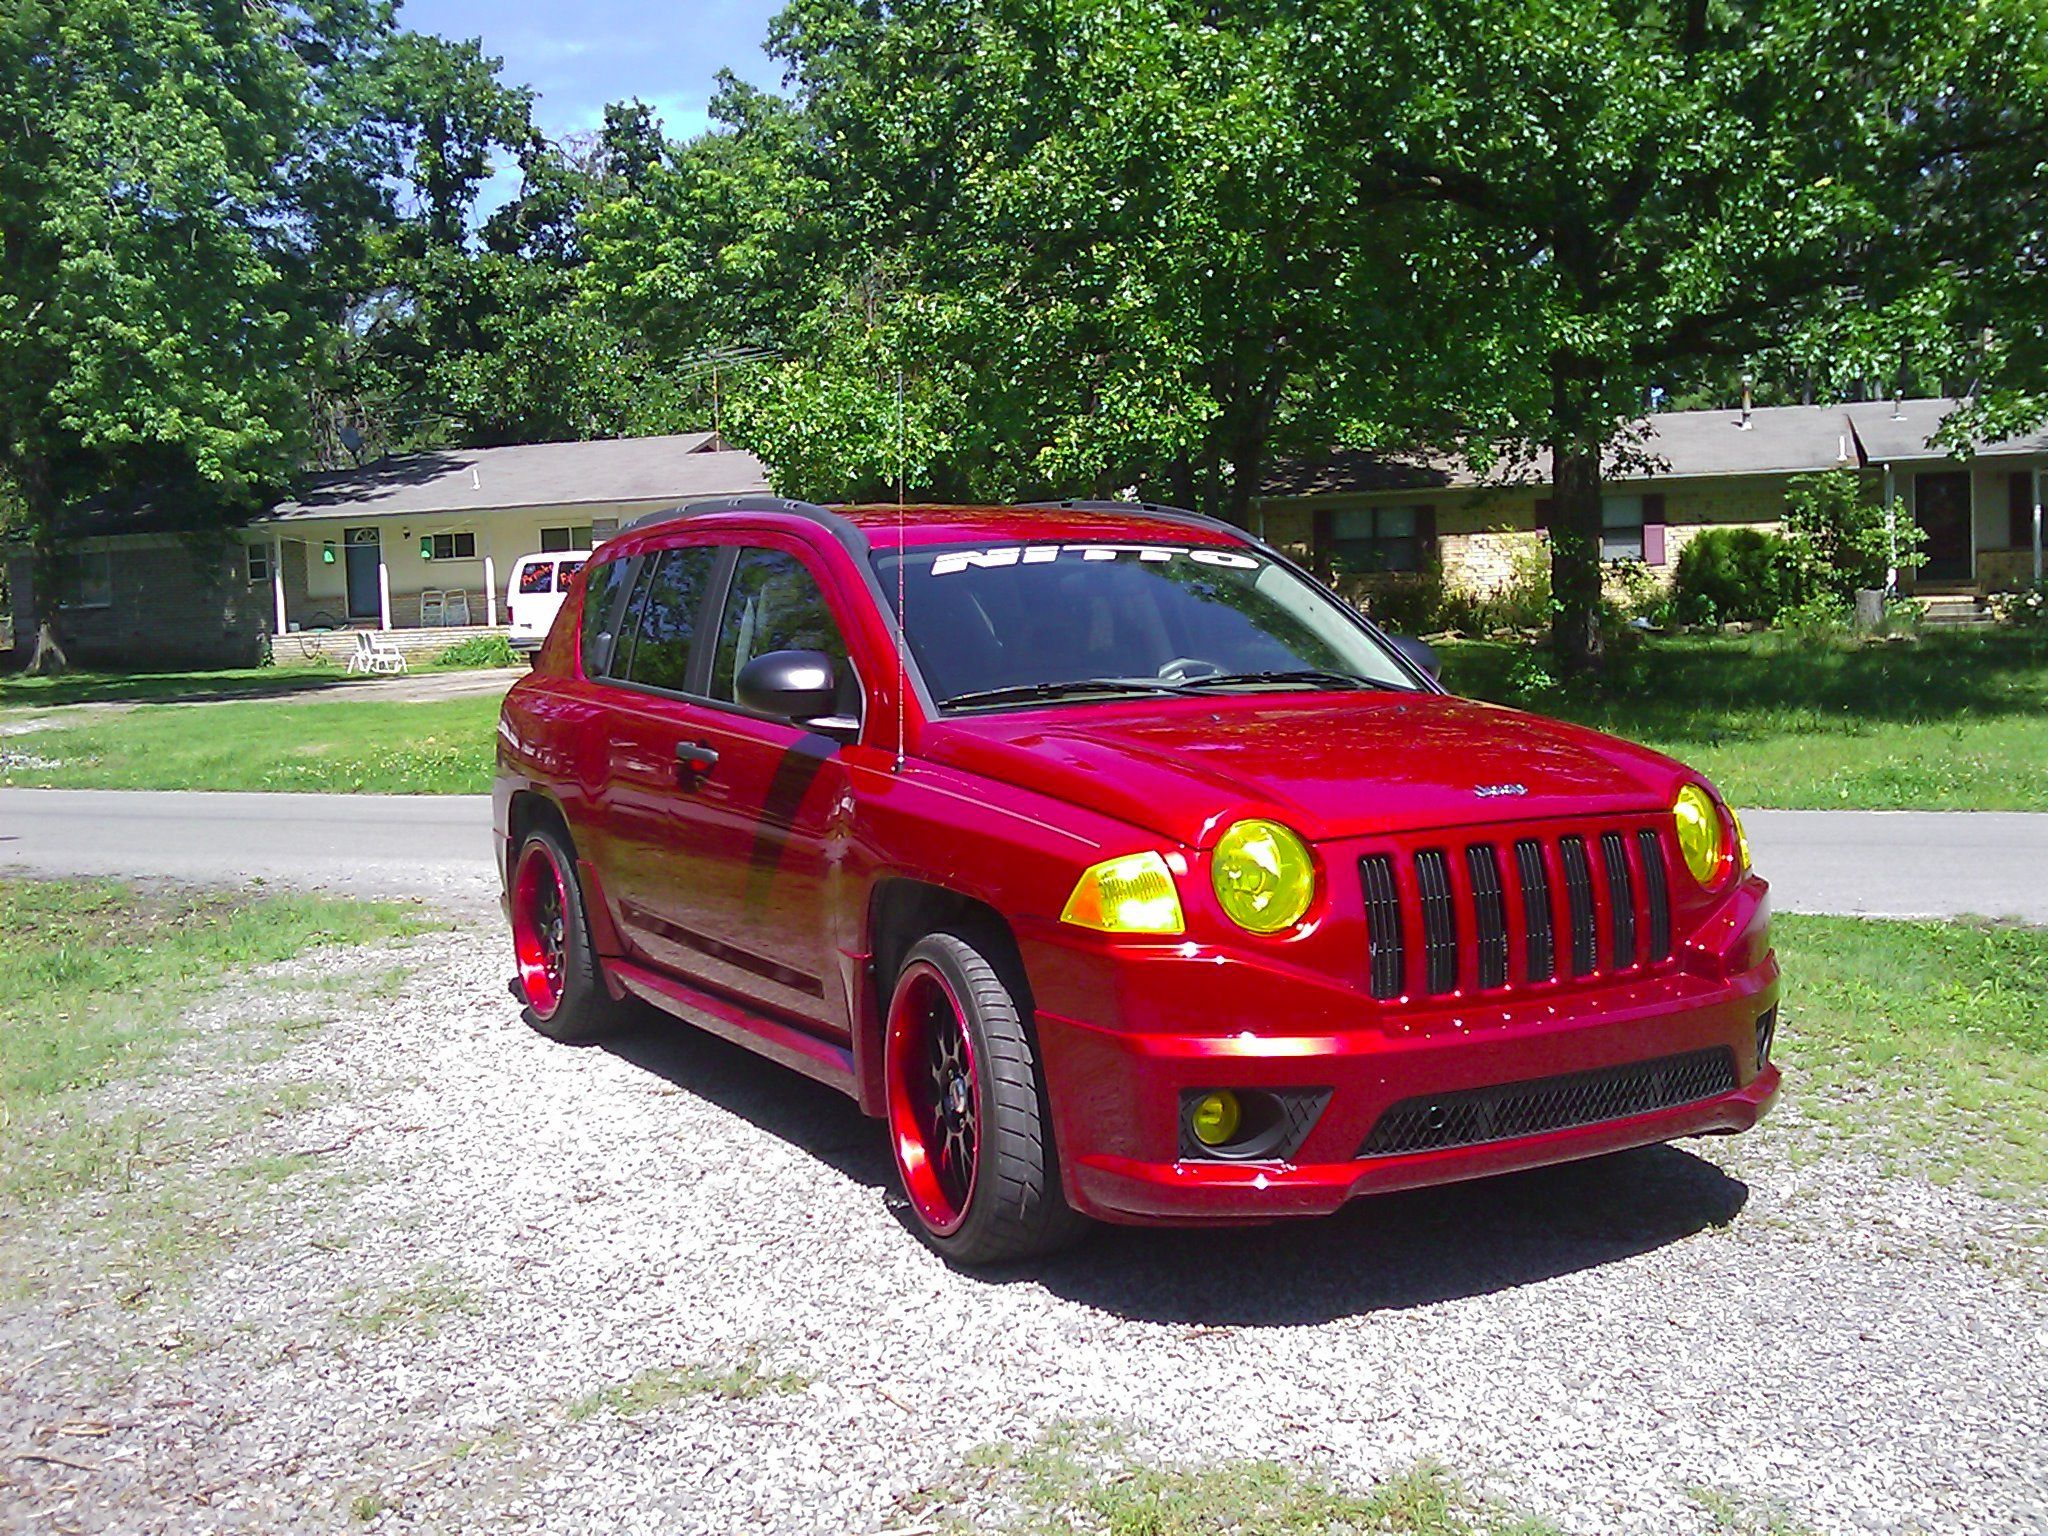 Mo4dave78 S 2007 Jeep Compass In Tahlequah Ok 2007 Jeep Compass Jeep Compass Jeep